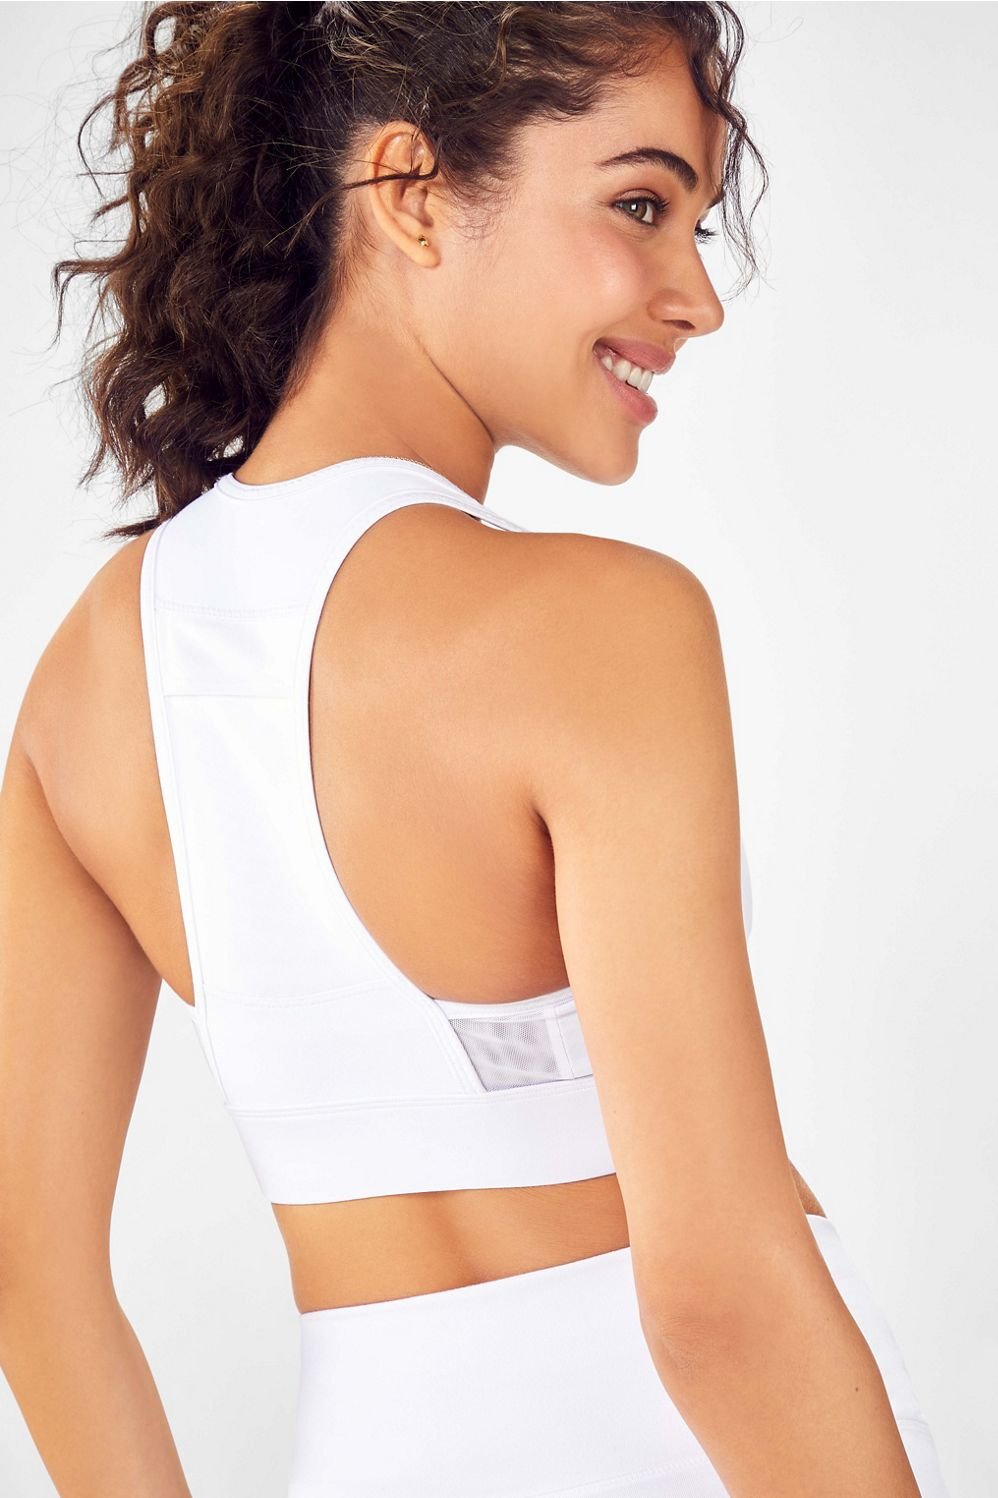 Pockets make everything better. That\\\'s why we added a back pocket to your medium-support bra, so you can stash away your cash or keys while you\\\'re working out.